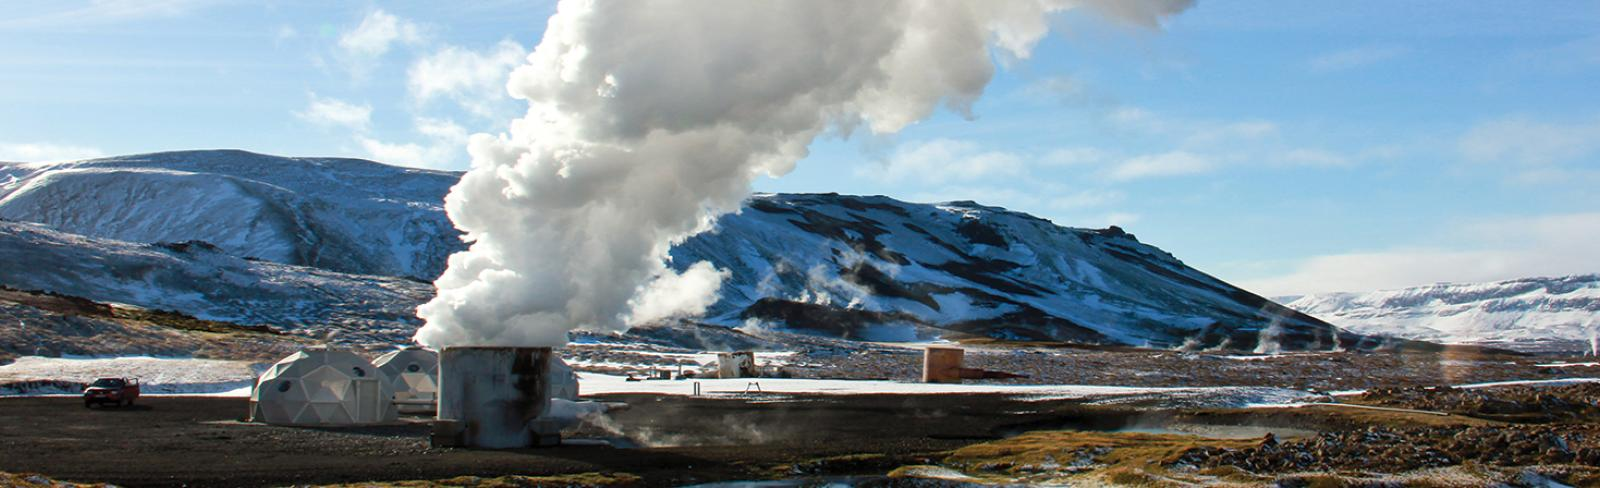 Preparing Feasibility Studies for the Financing of Geothermal Projects: An Overview of Best Practices